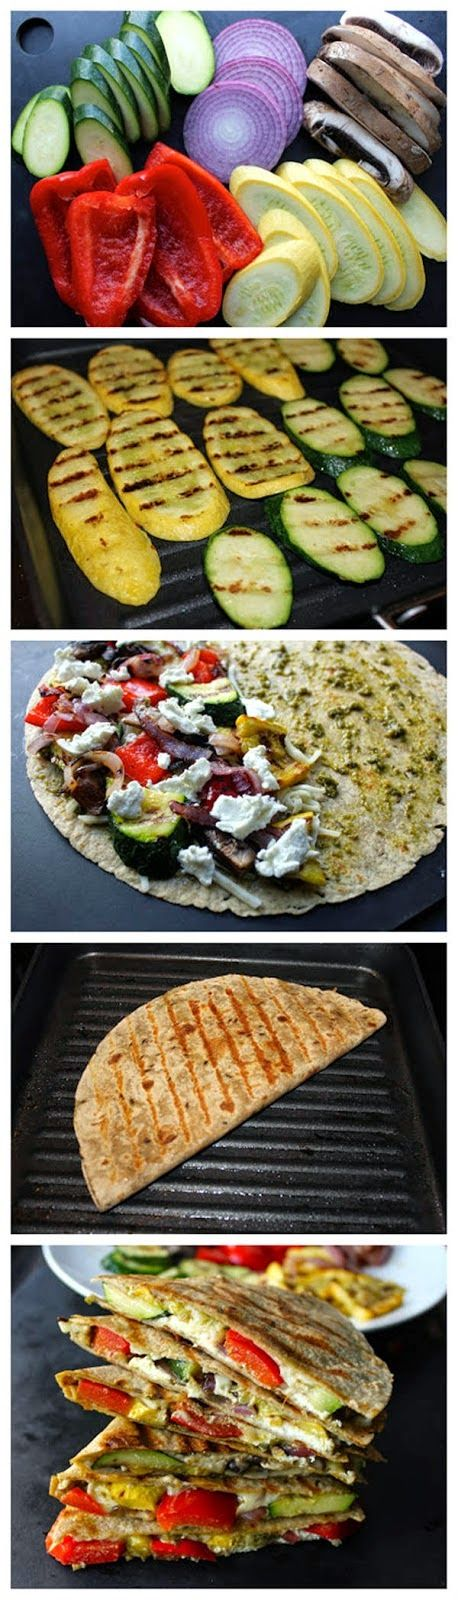 Grilled Vegetable Quesadillas with Goat Cheese and Pesto. An unexpected and delicious choice for grilling season!